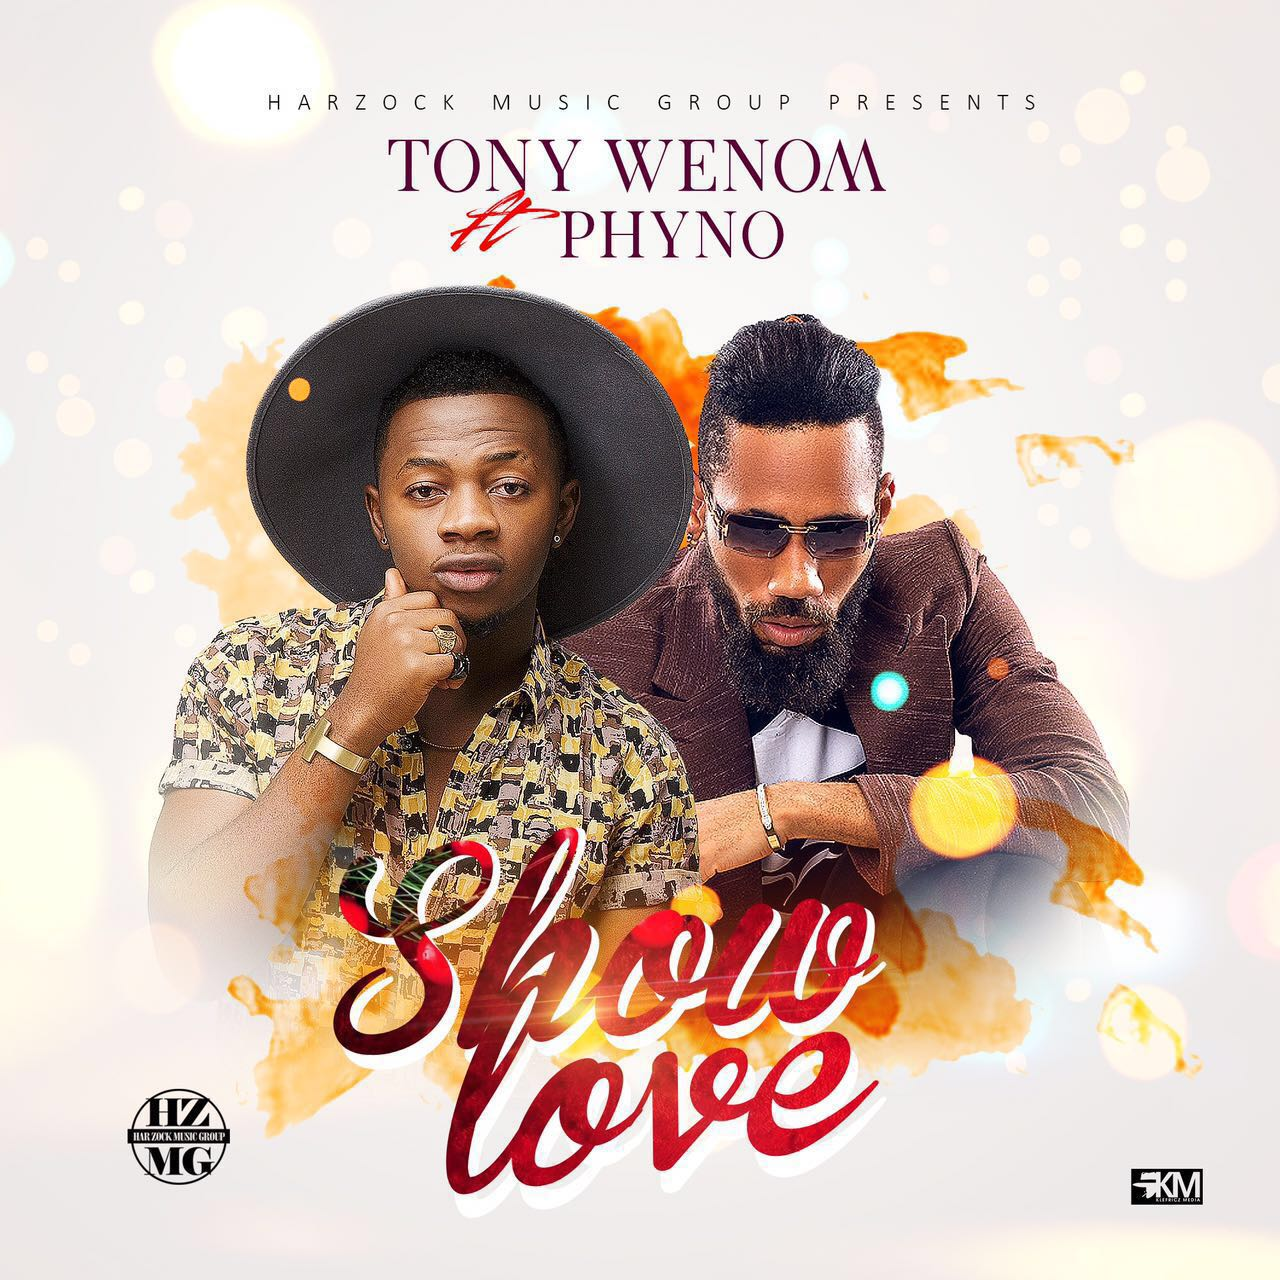 Tony Wenom ft. Phyno - Show Love